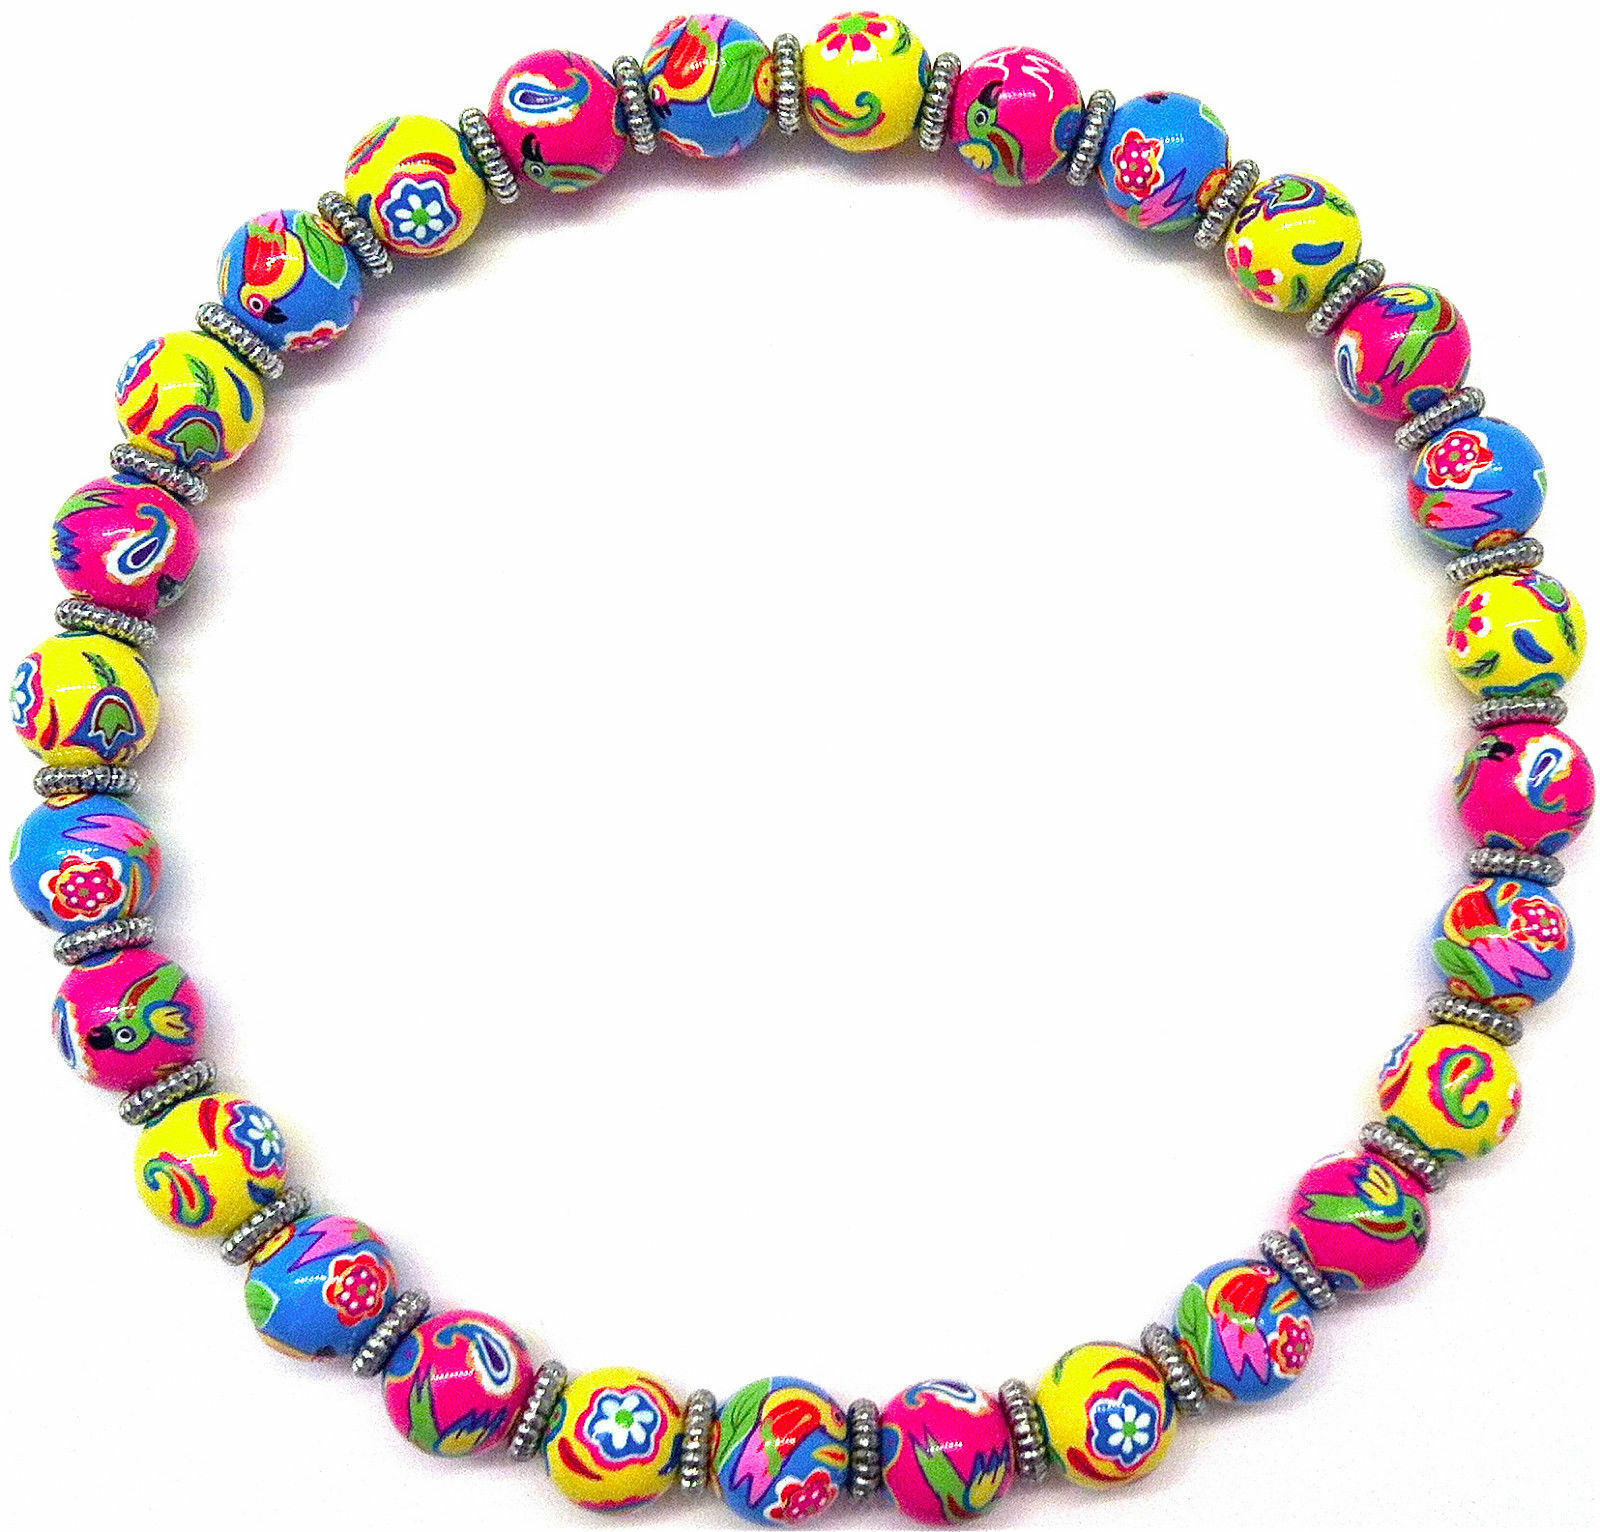 NEW ANGELA MOORE PINK YELLOW BLUE BEADED NECKLACE FLOWERS BIRDS SILVER SPACERS